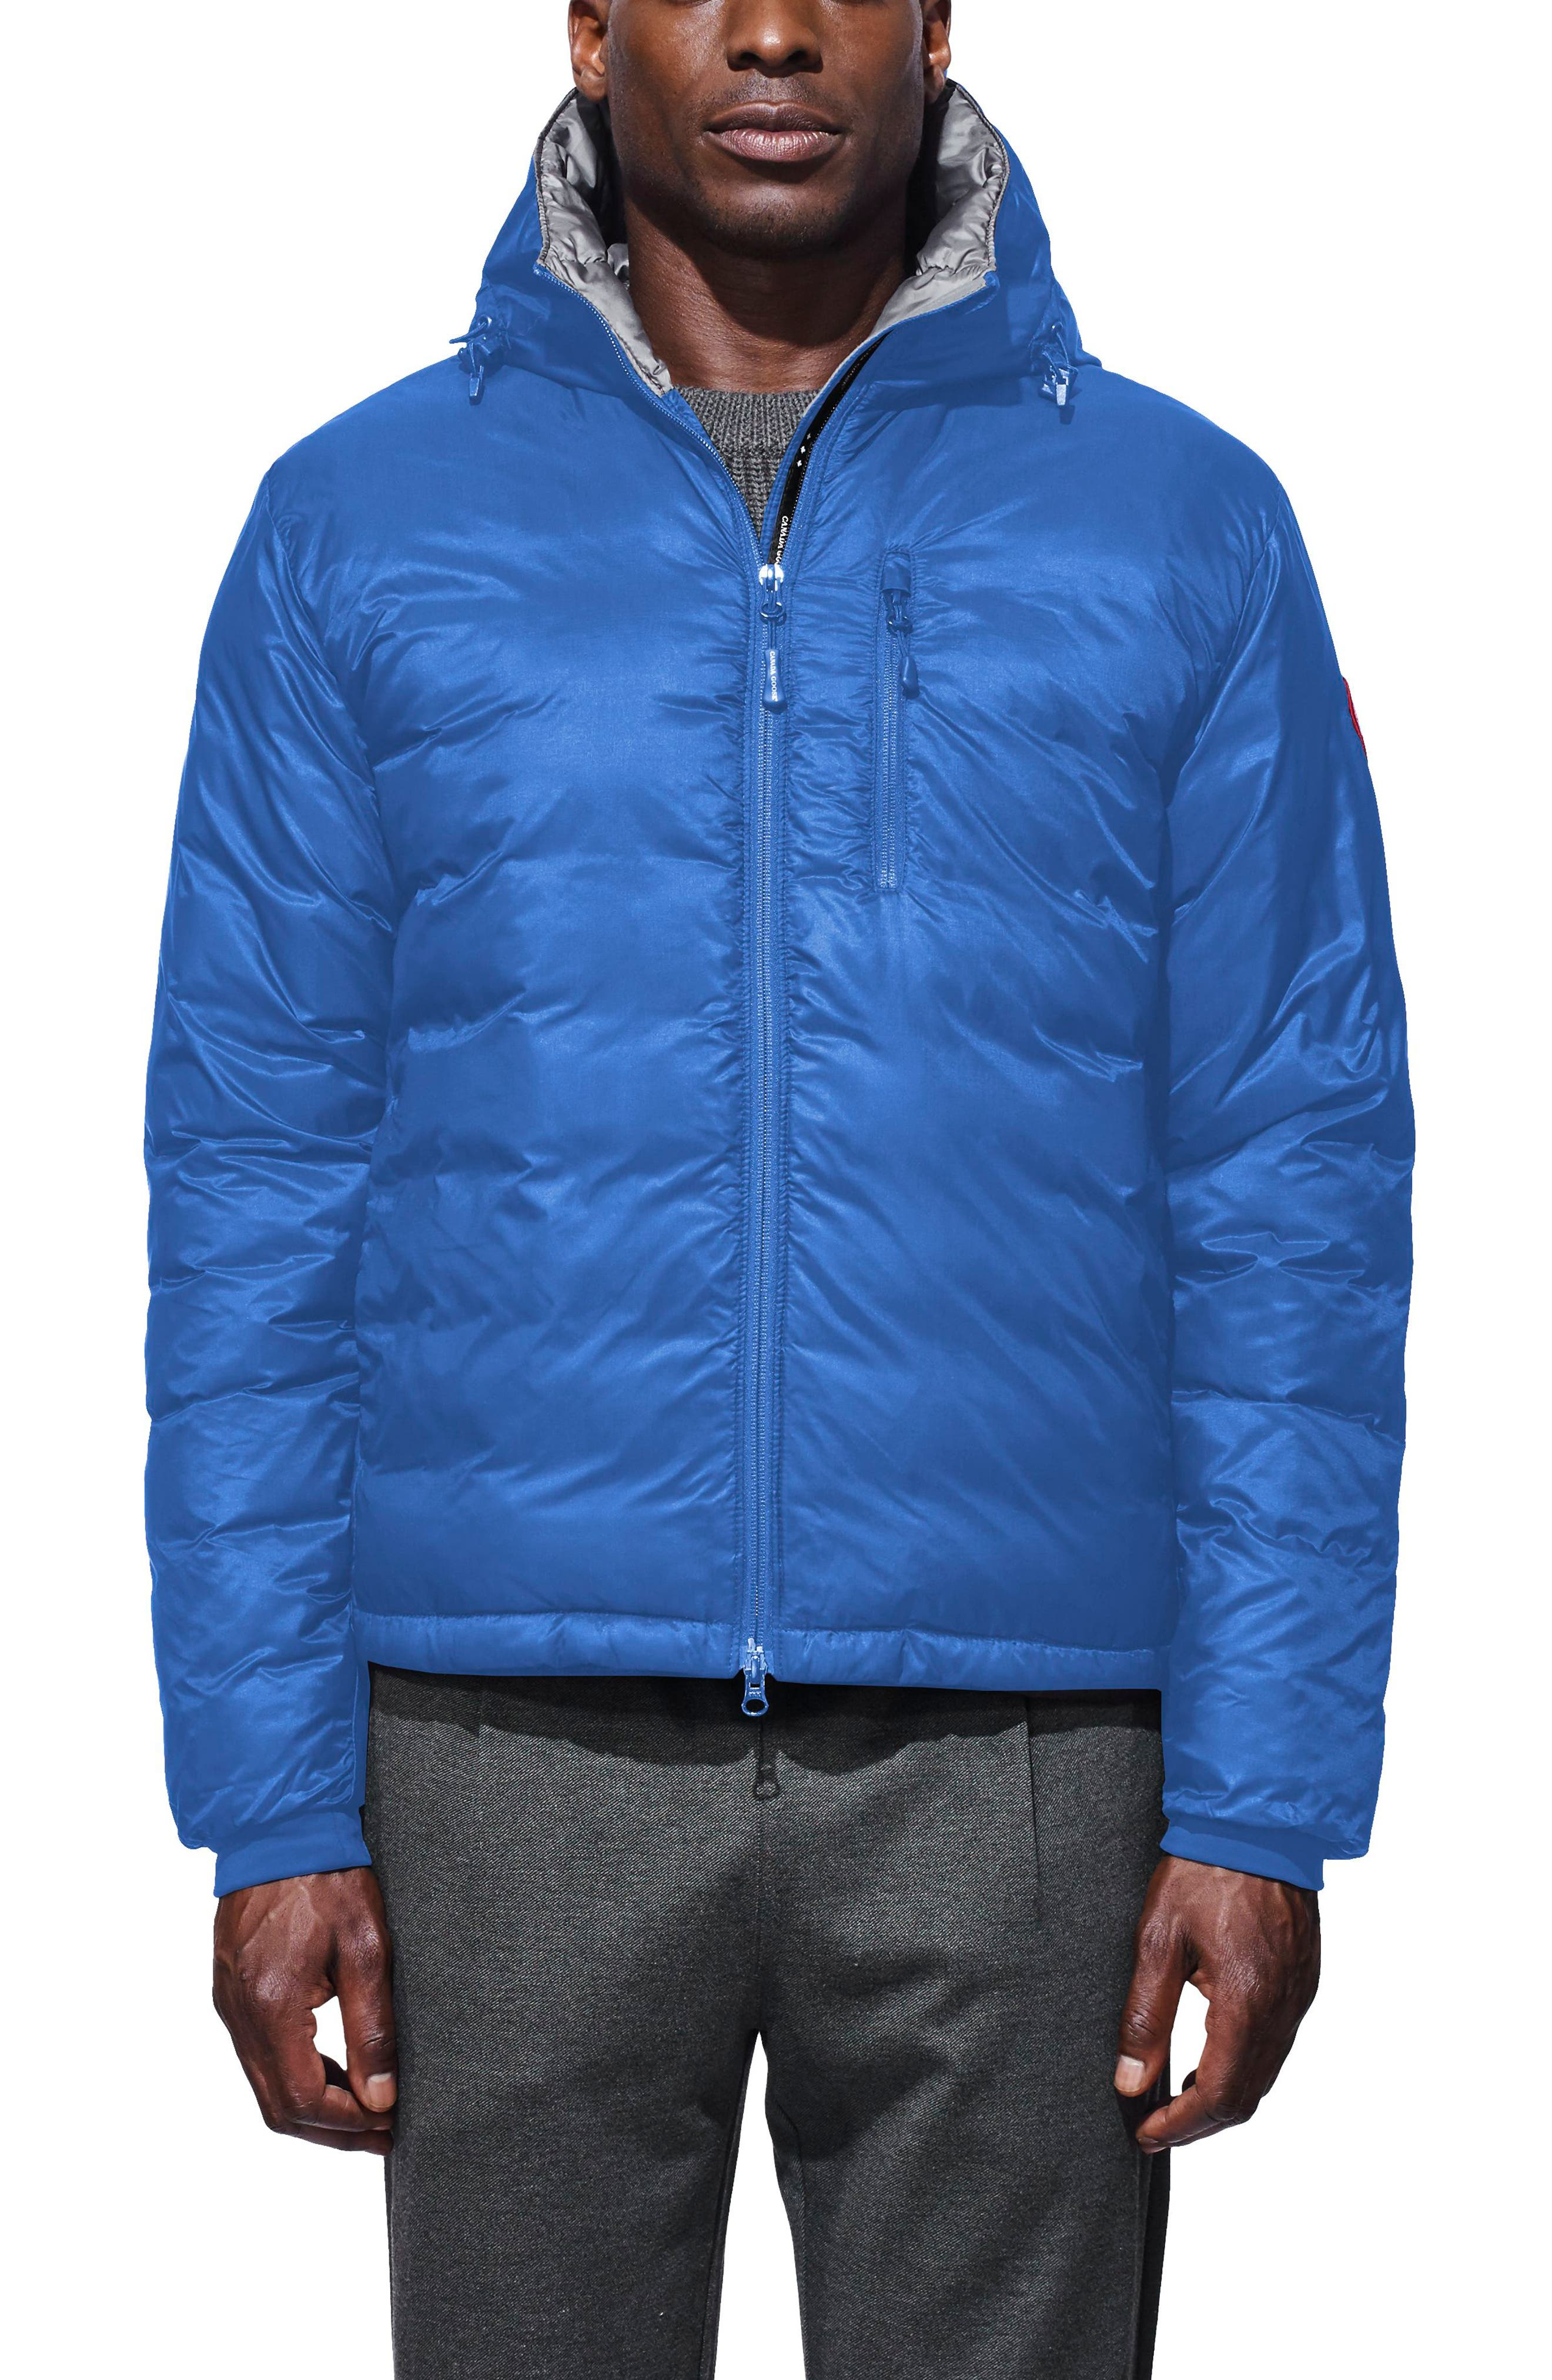 PBI Lodge Packable Down Hooded Jacket,                         Main,                         color, Royal Blue